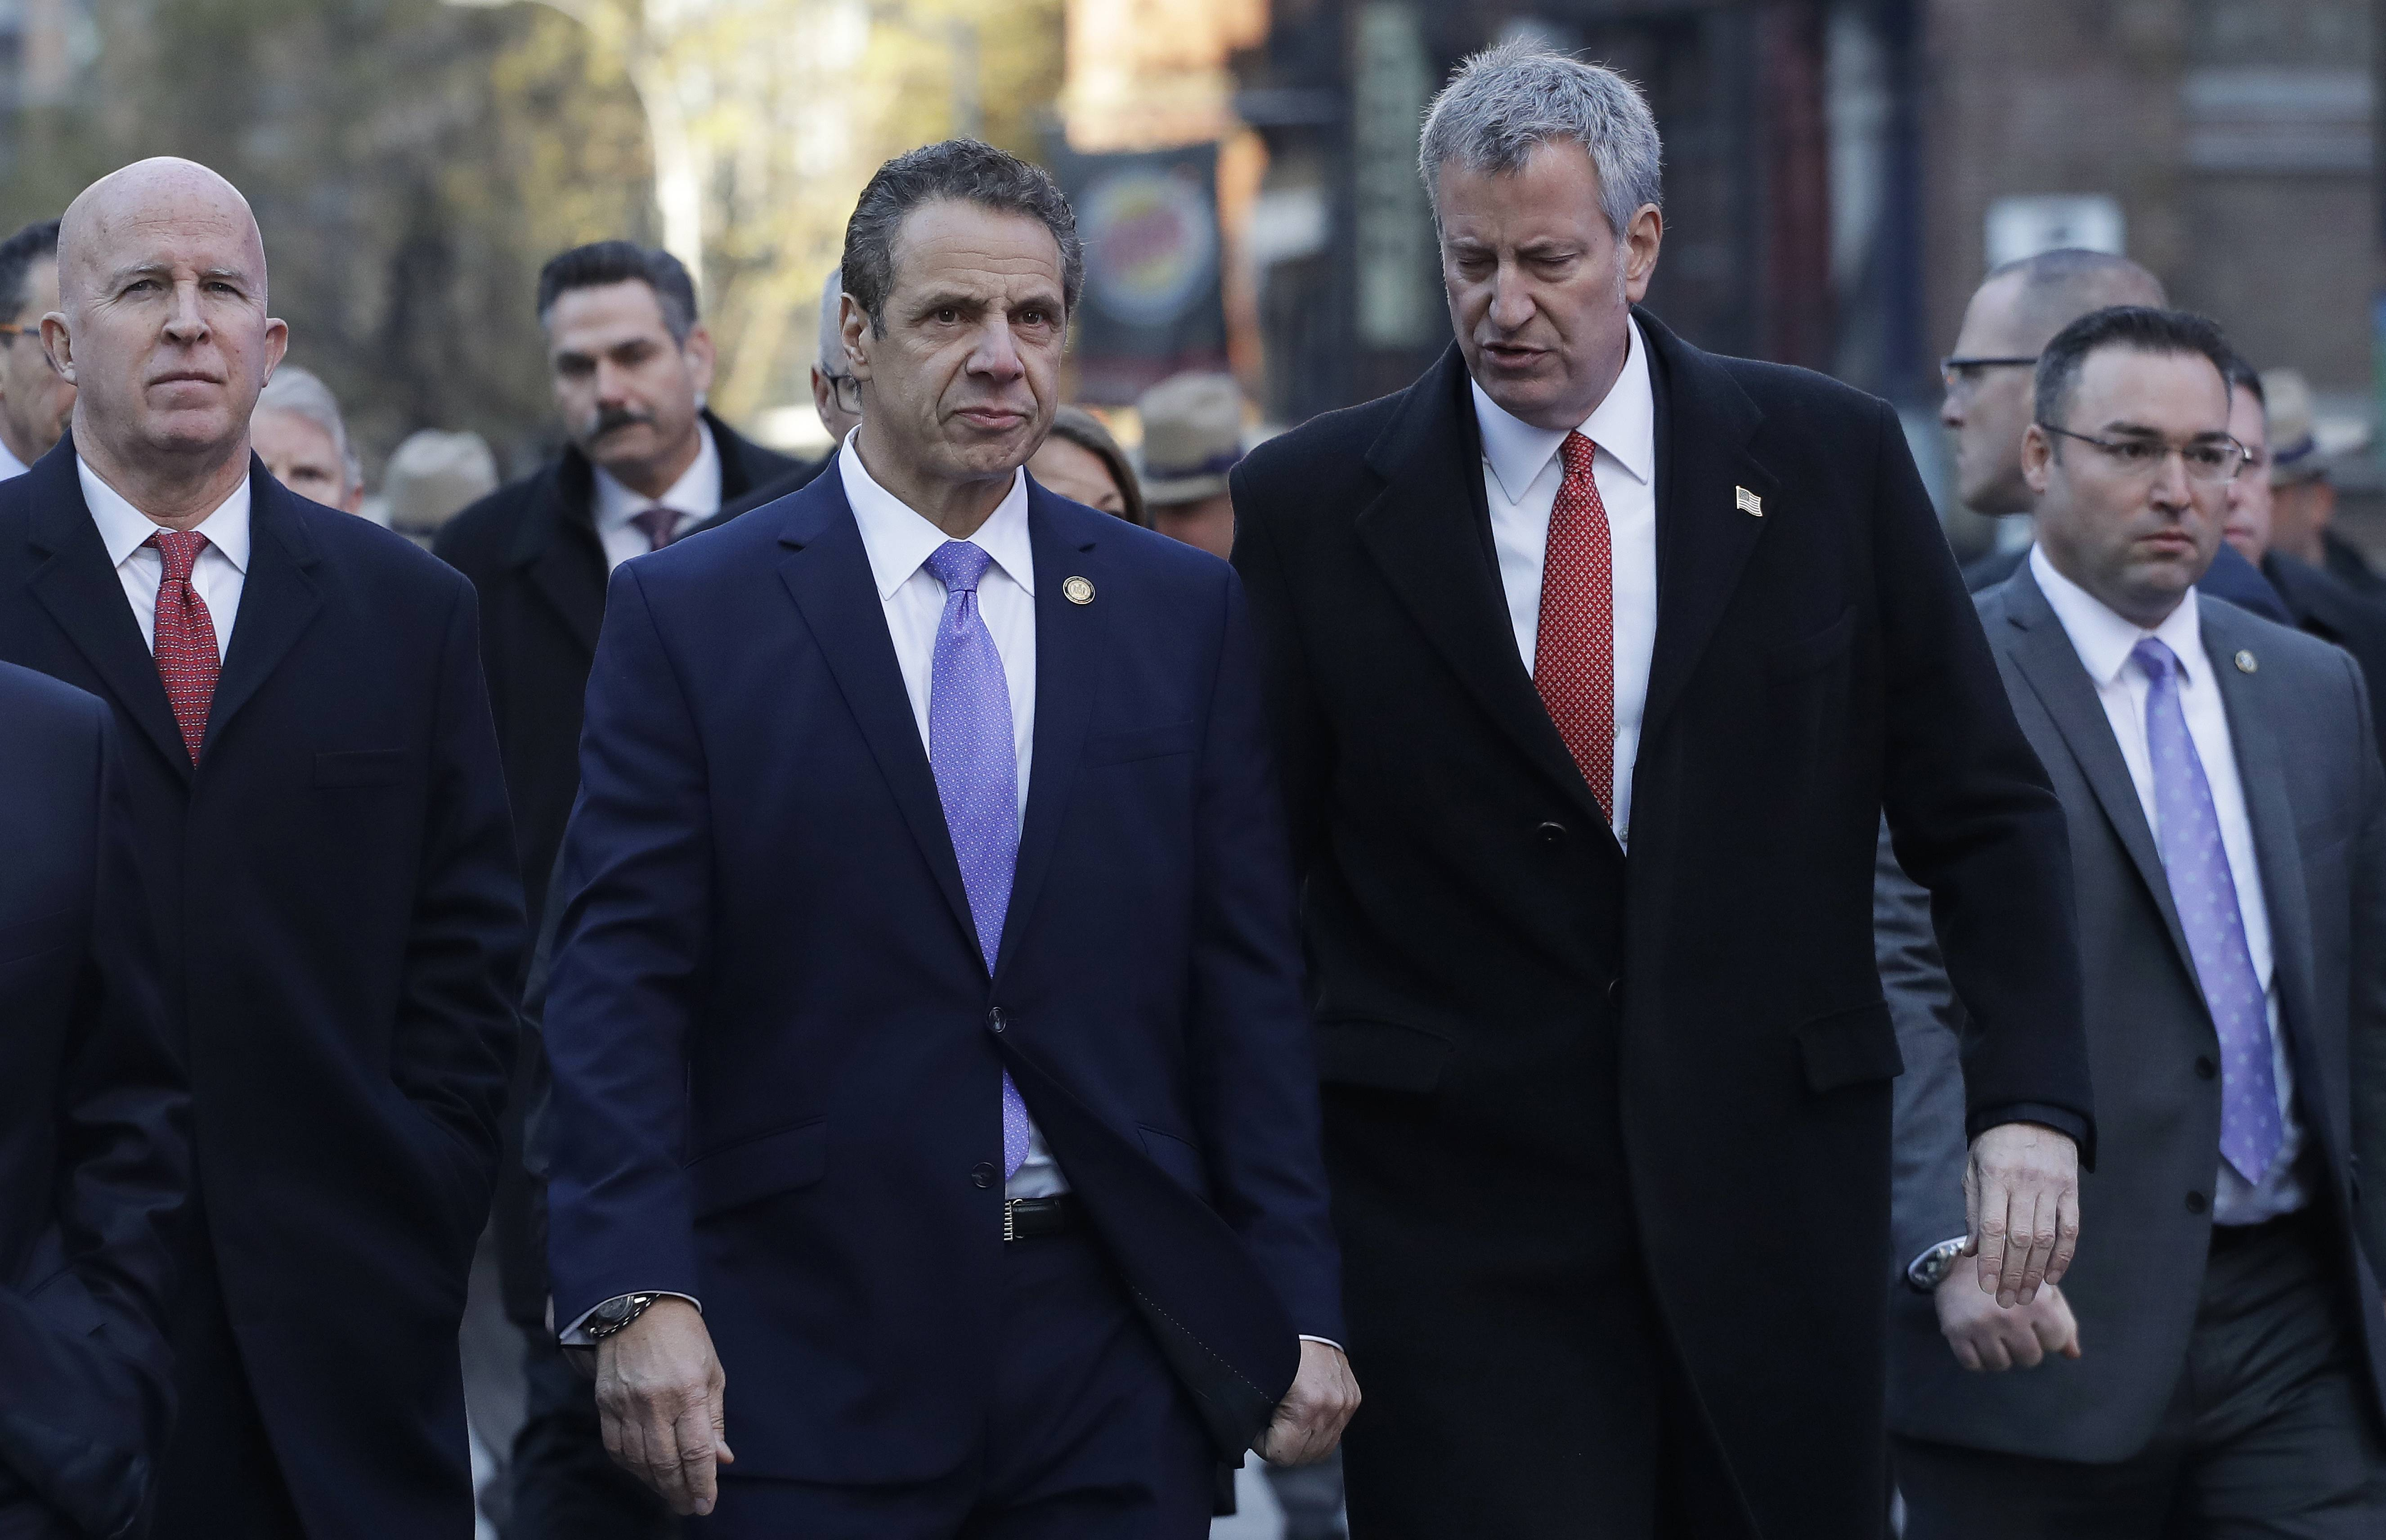 New York Gov. Andrew Cuomo, center, and Mayor Bill de Blasio arrive Monday for a news conference outside the Port Authority Bus Terminal in New York. Police Commissioner James O'Neill is at left.